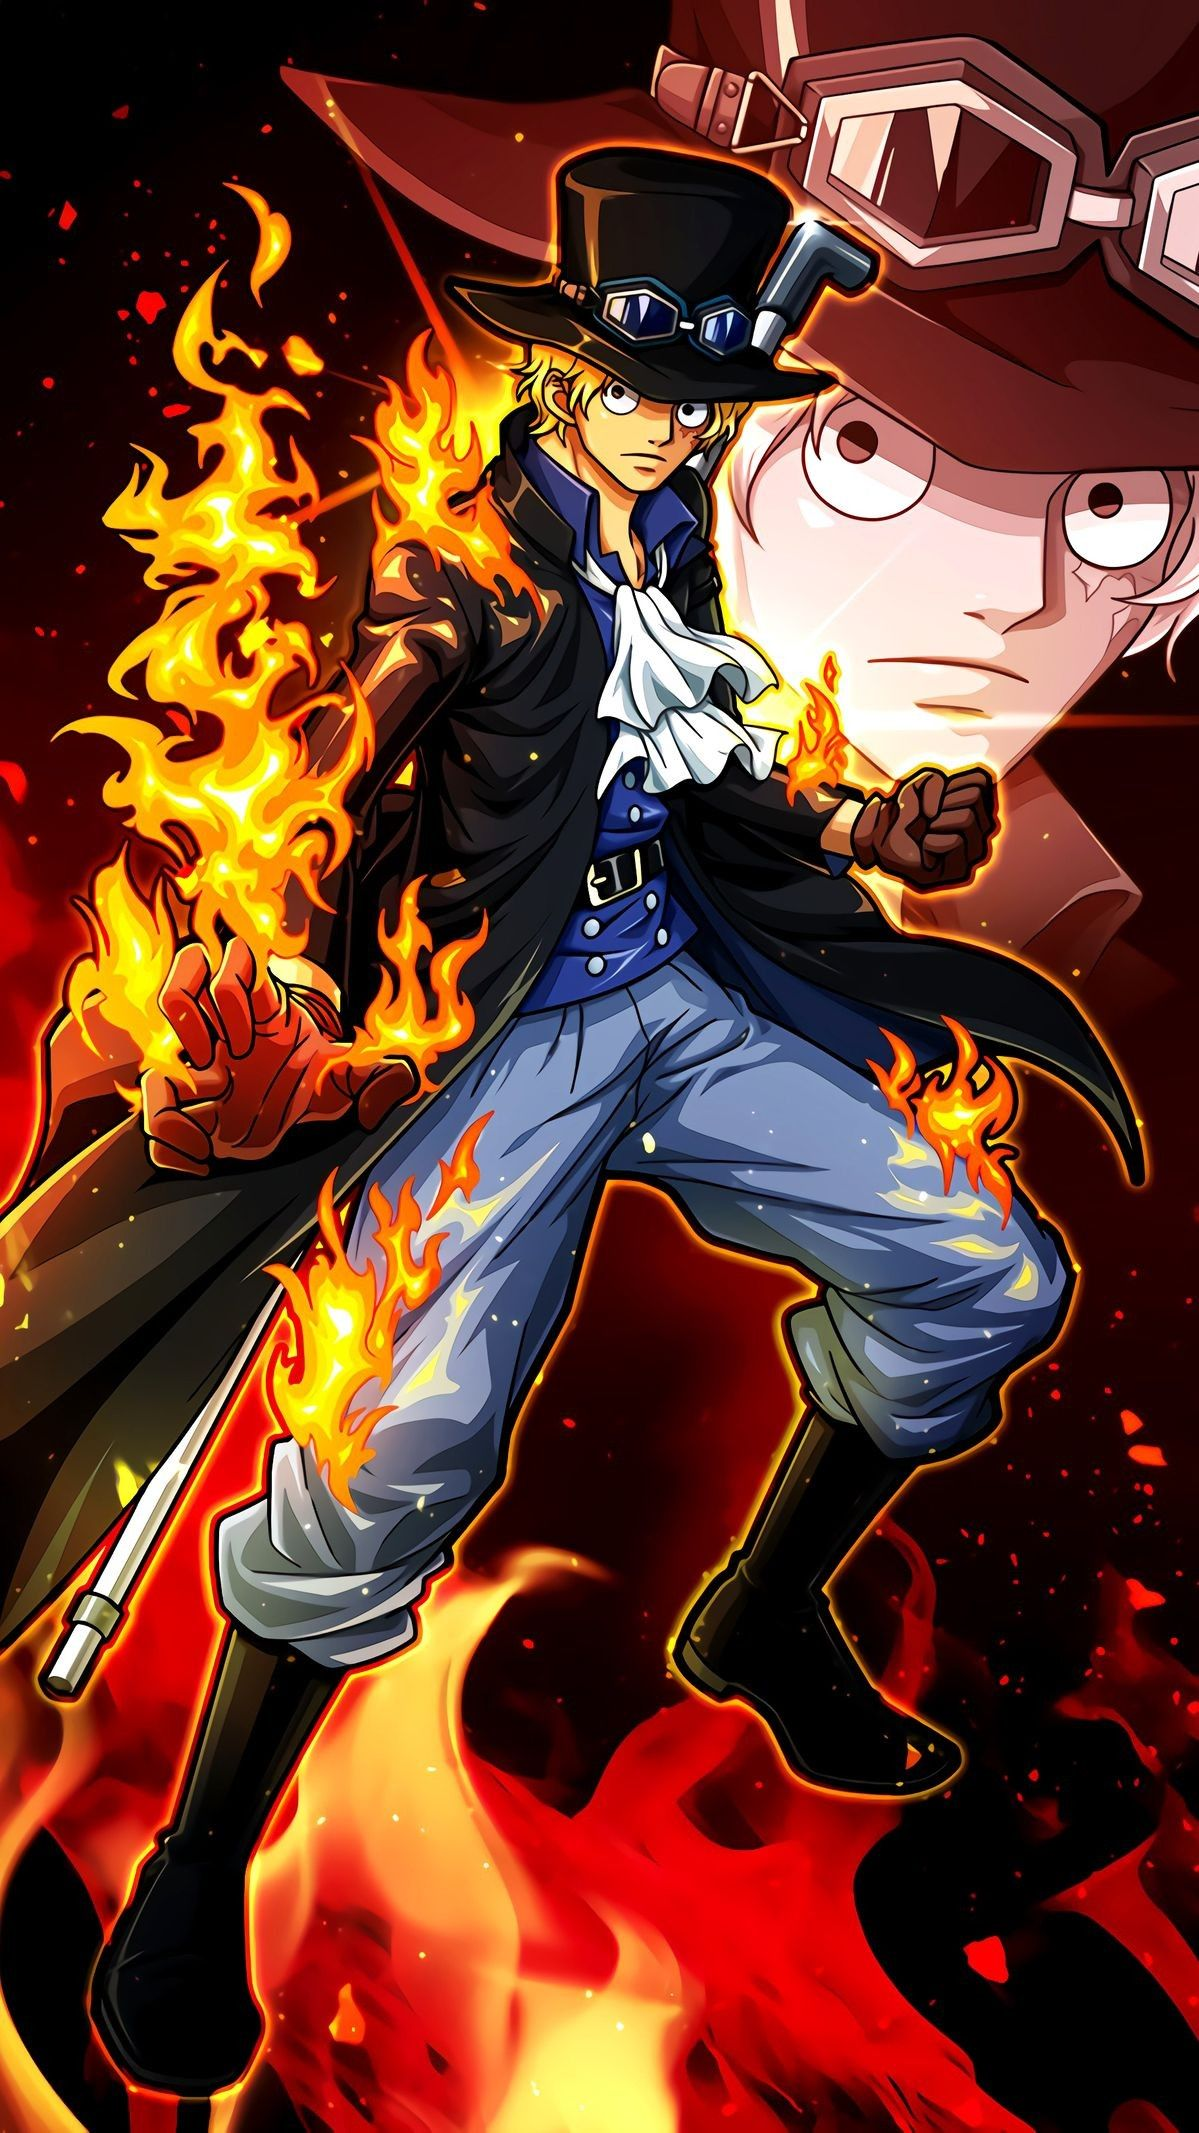 One Piece Sabo Wallpaper 1199x2133 Download Hd Wallpaper Wallpapertip